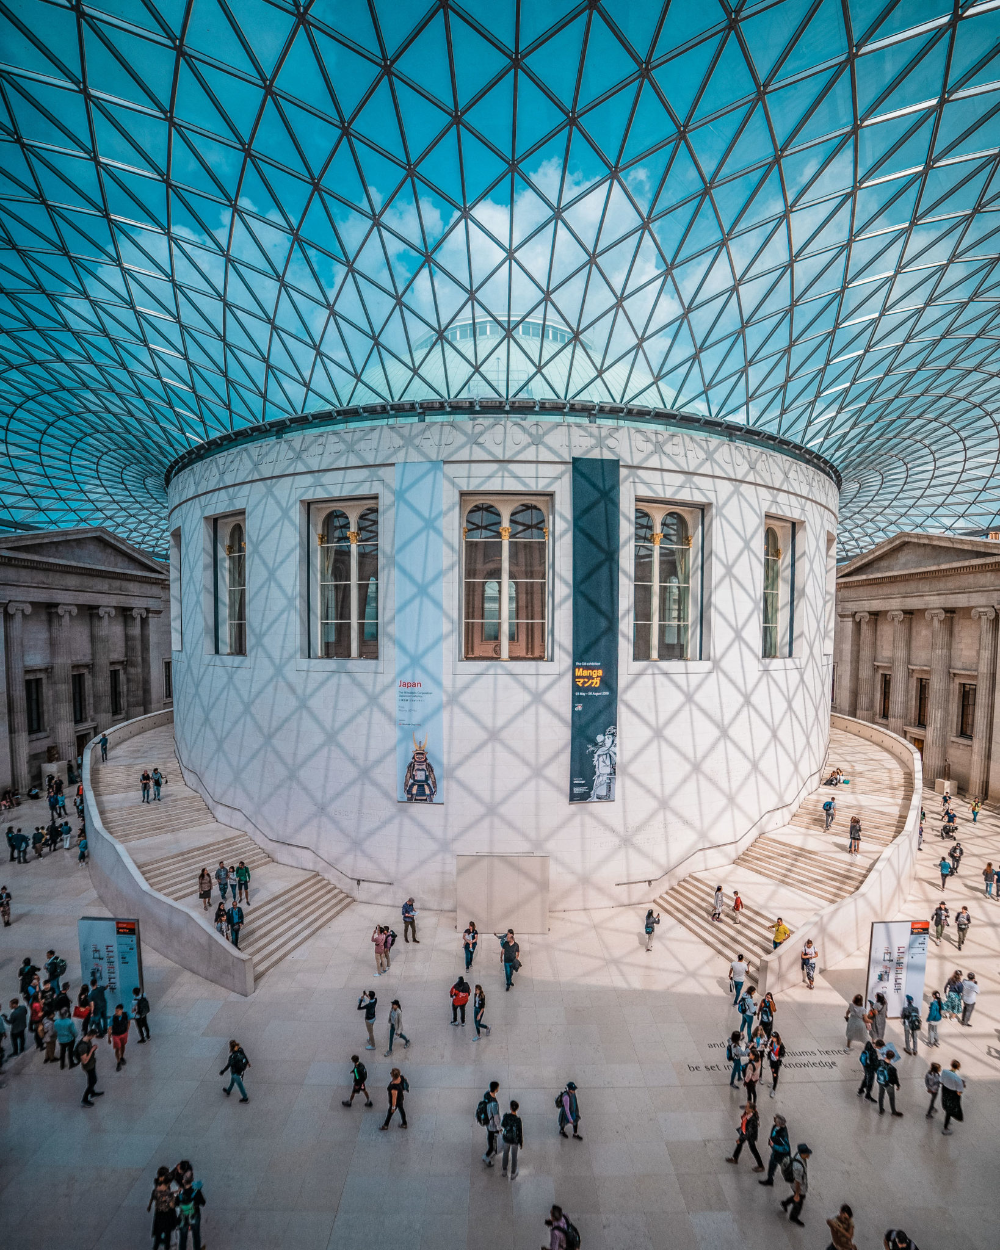 Take a Virtual Tour of These Museums Any Time Exploring